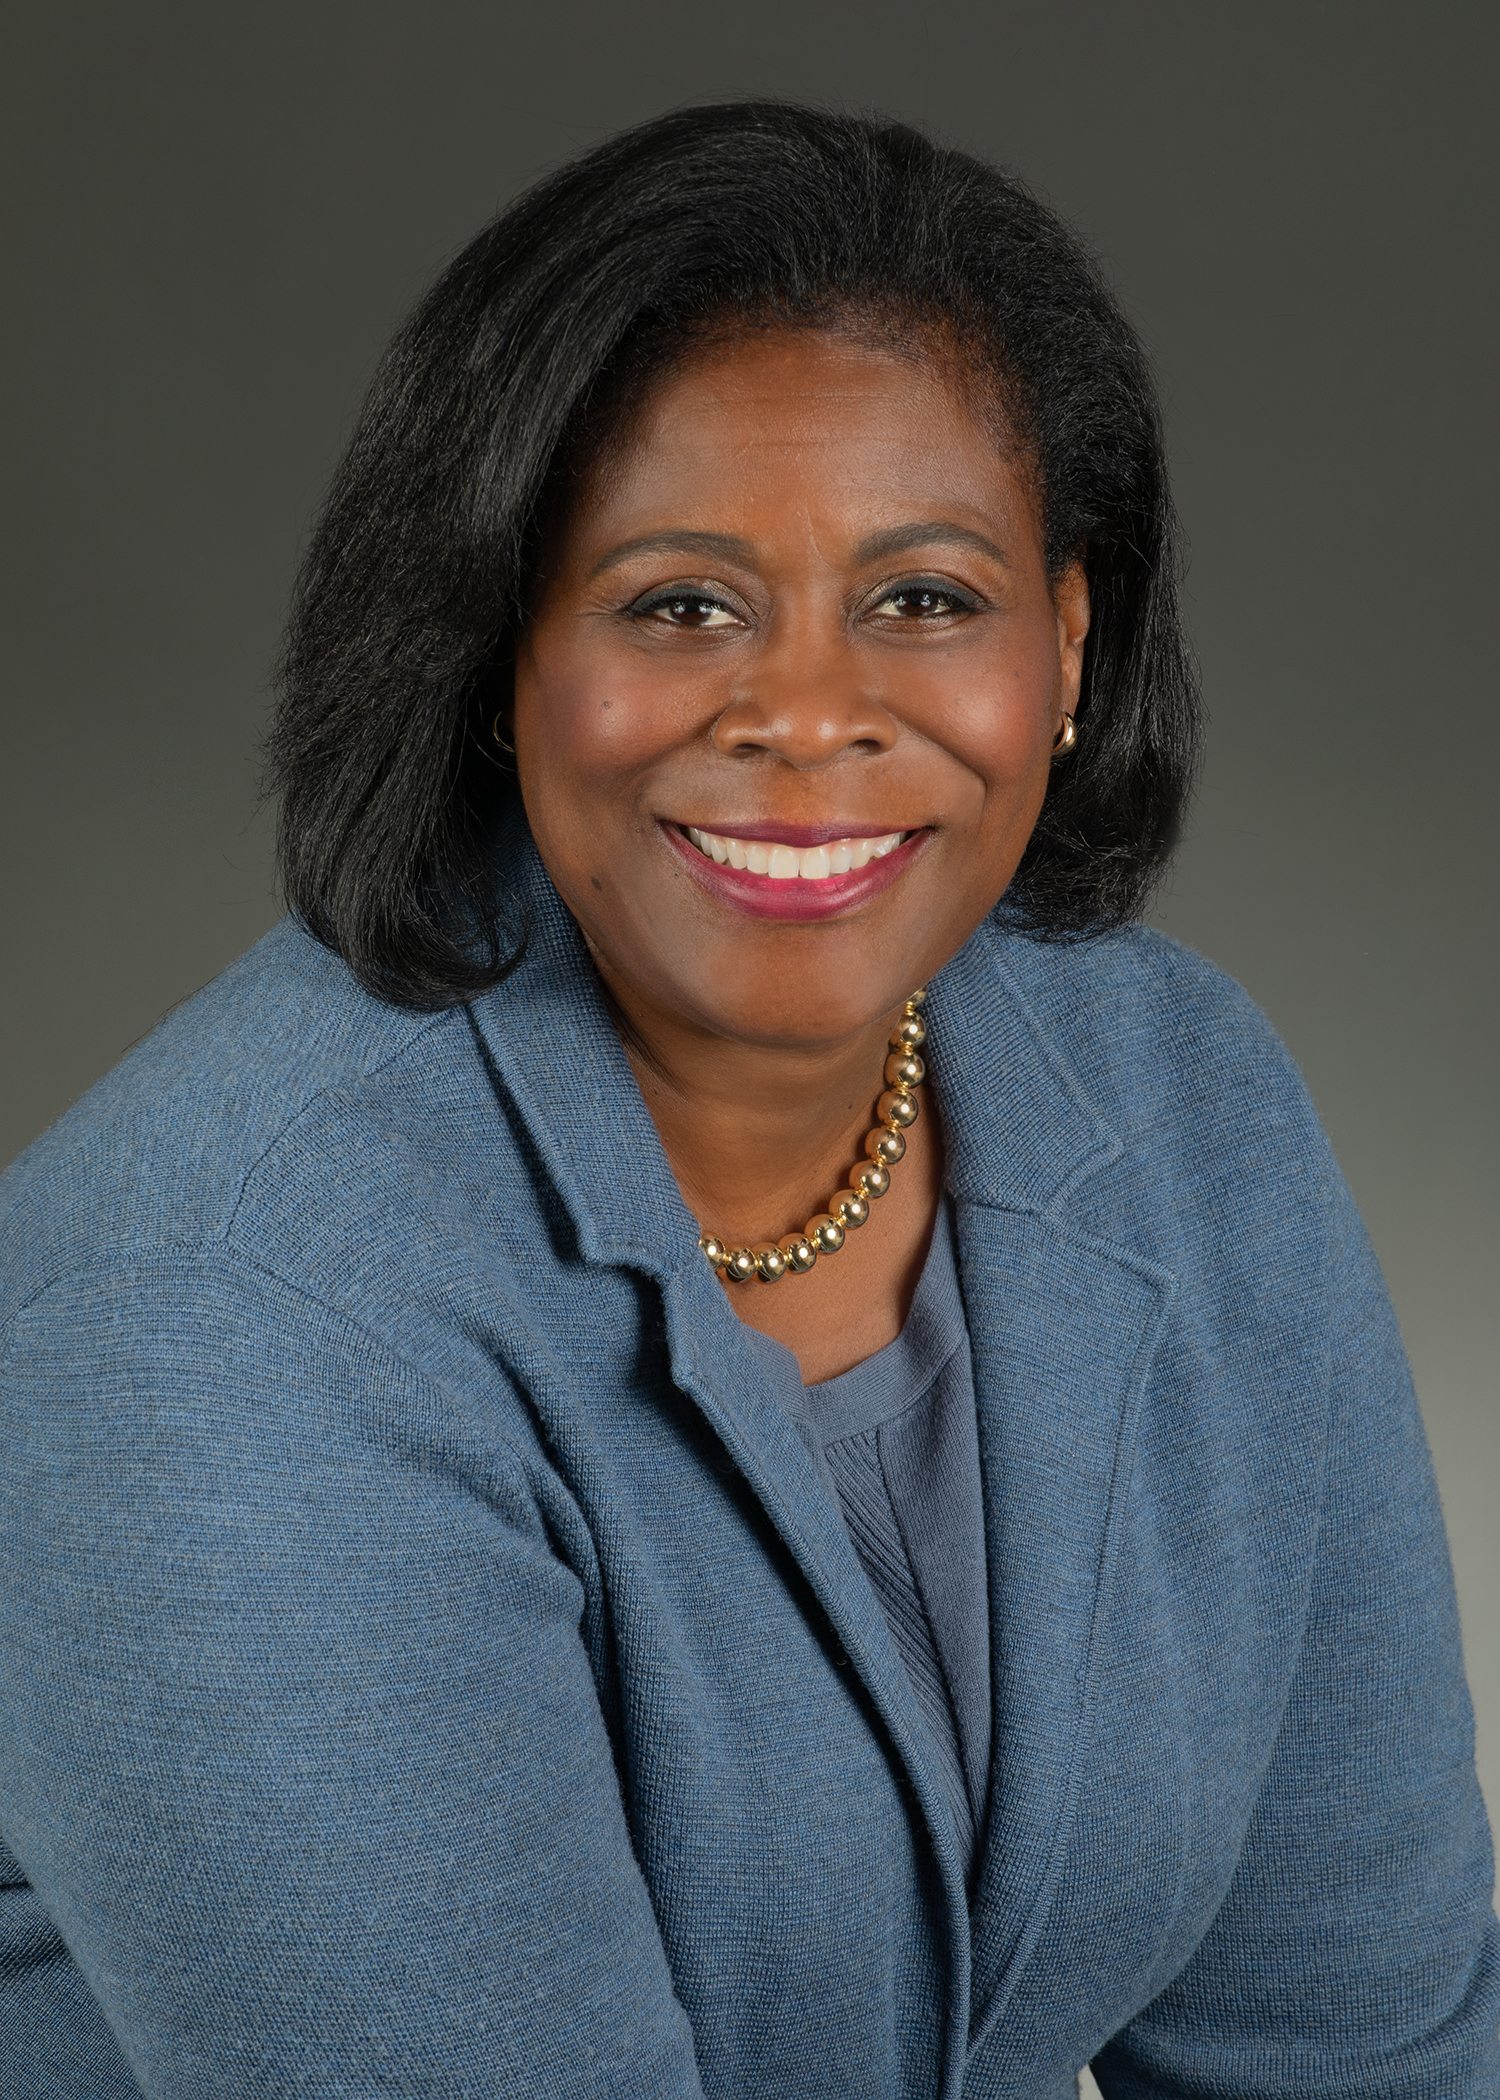 Desorae Giles-Smith Appointed Interim City Manager Upon City Manager Charles Faranda's Upcoming Retirement